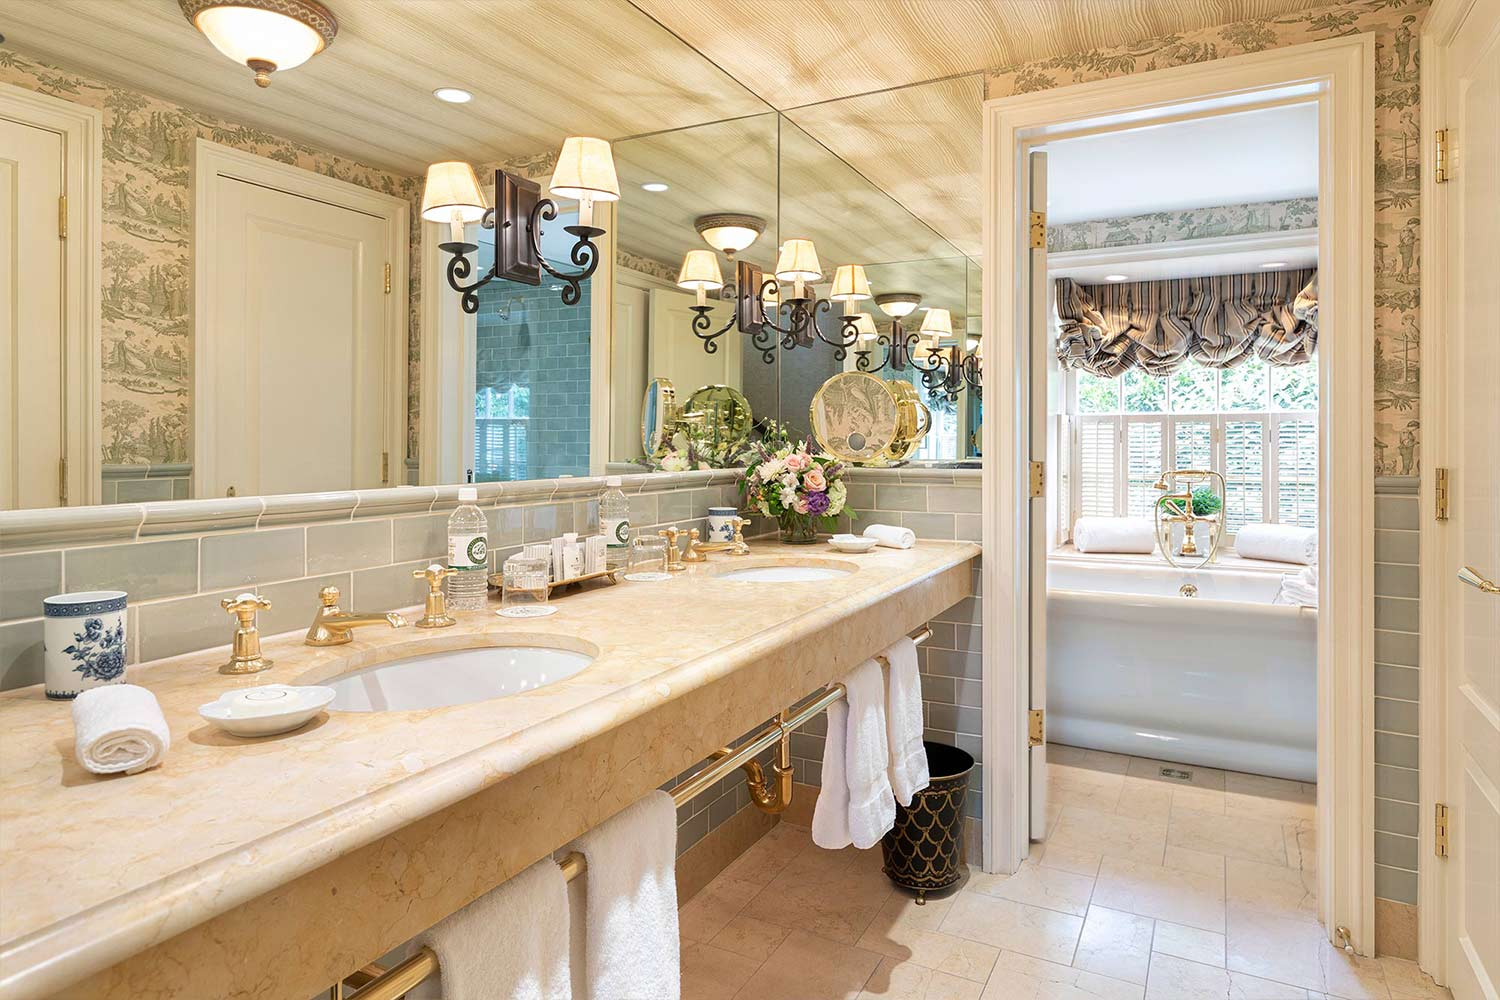 A bright bathroom with dual vanity sinks and a large soaking tub.